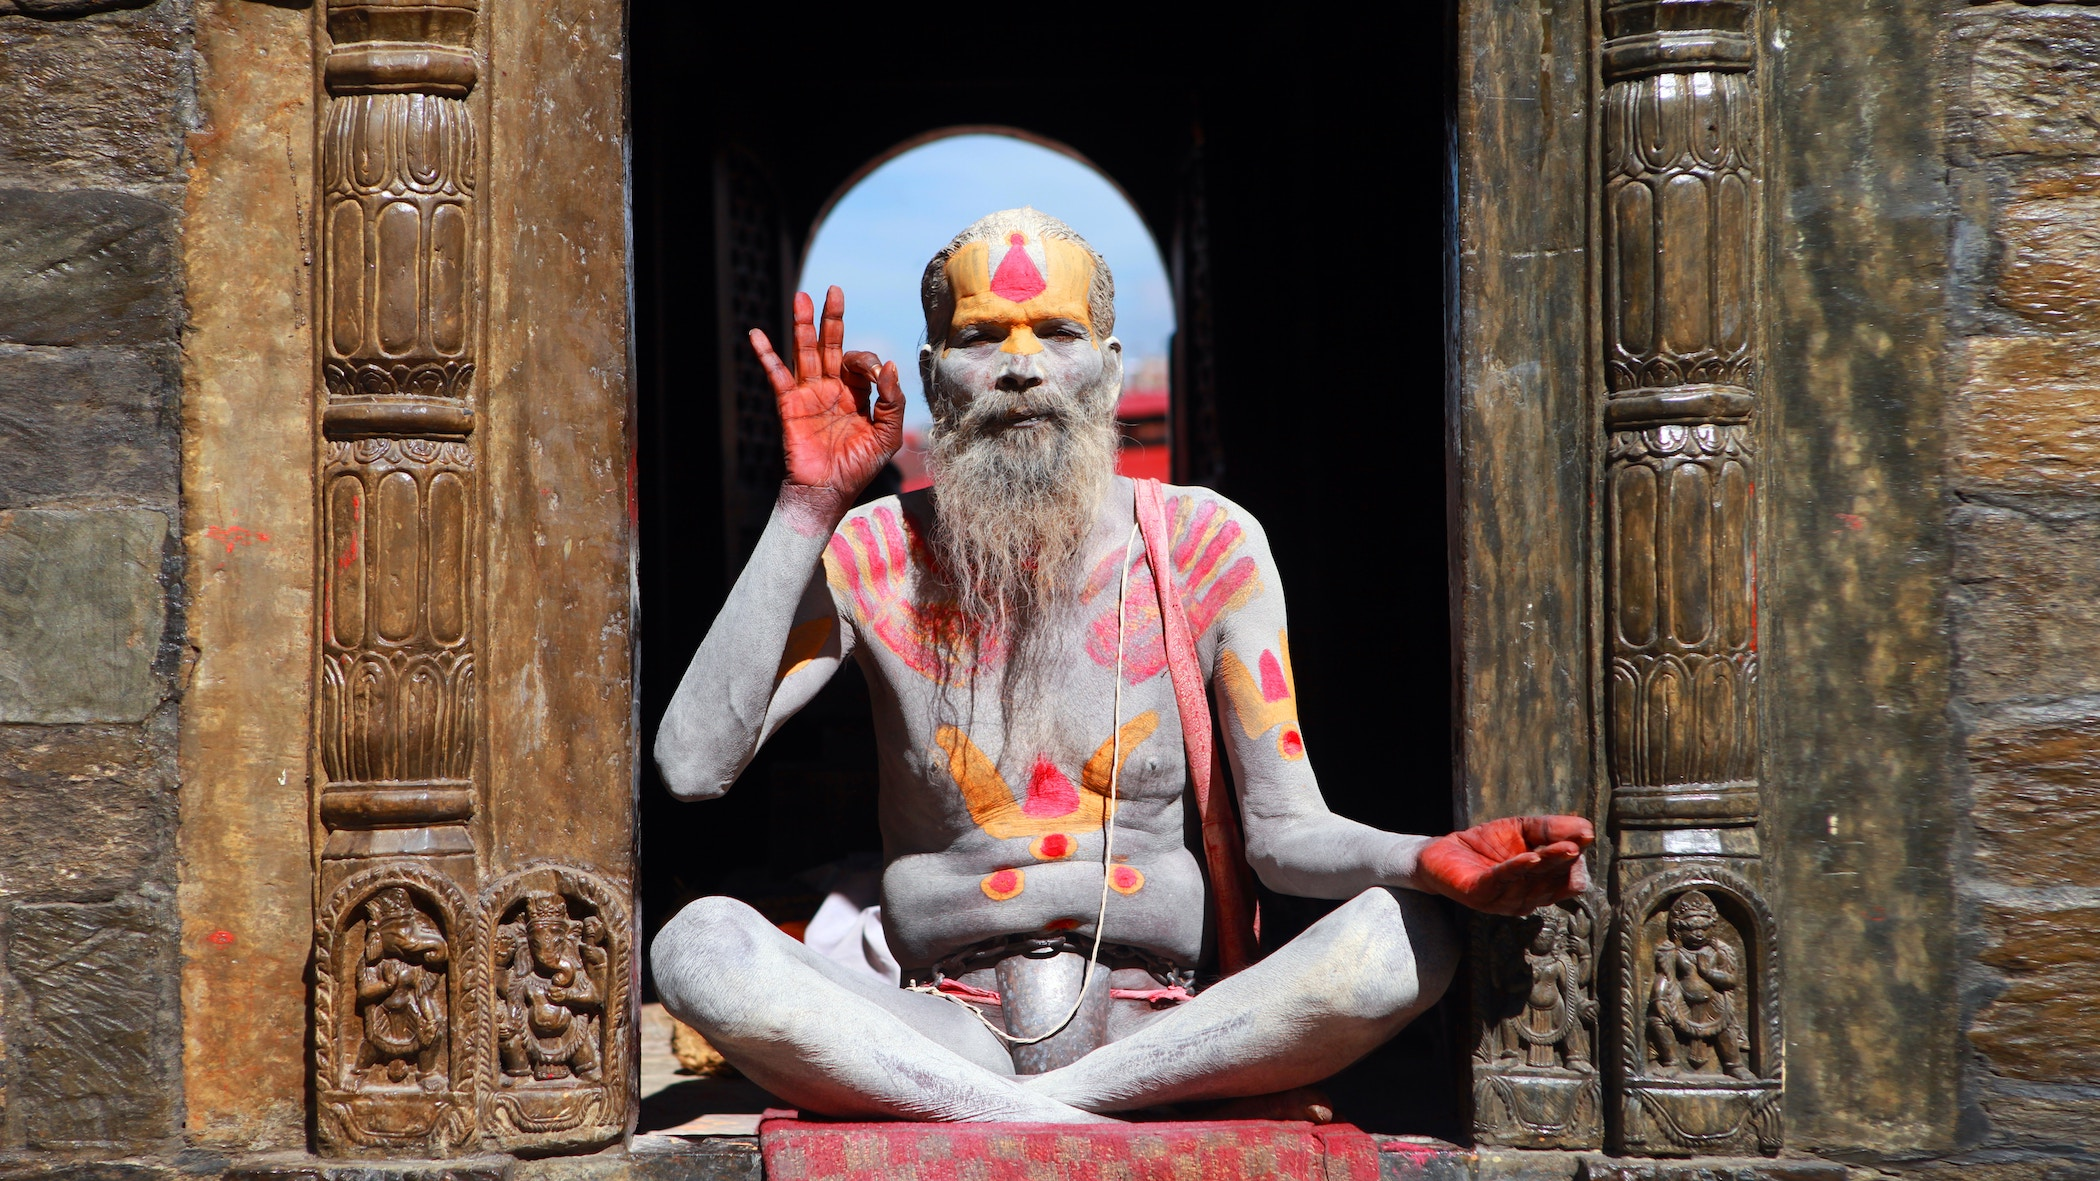 Man covered in body paint meditating in the sun, the fingers on his right hand forming an